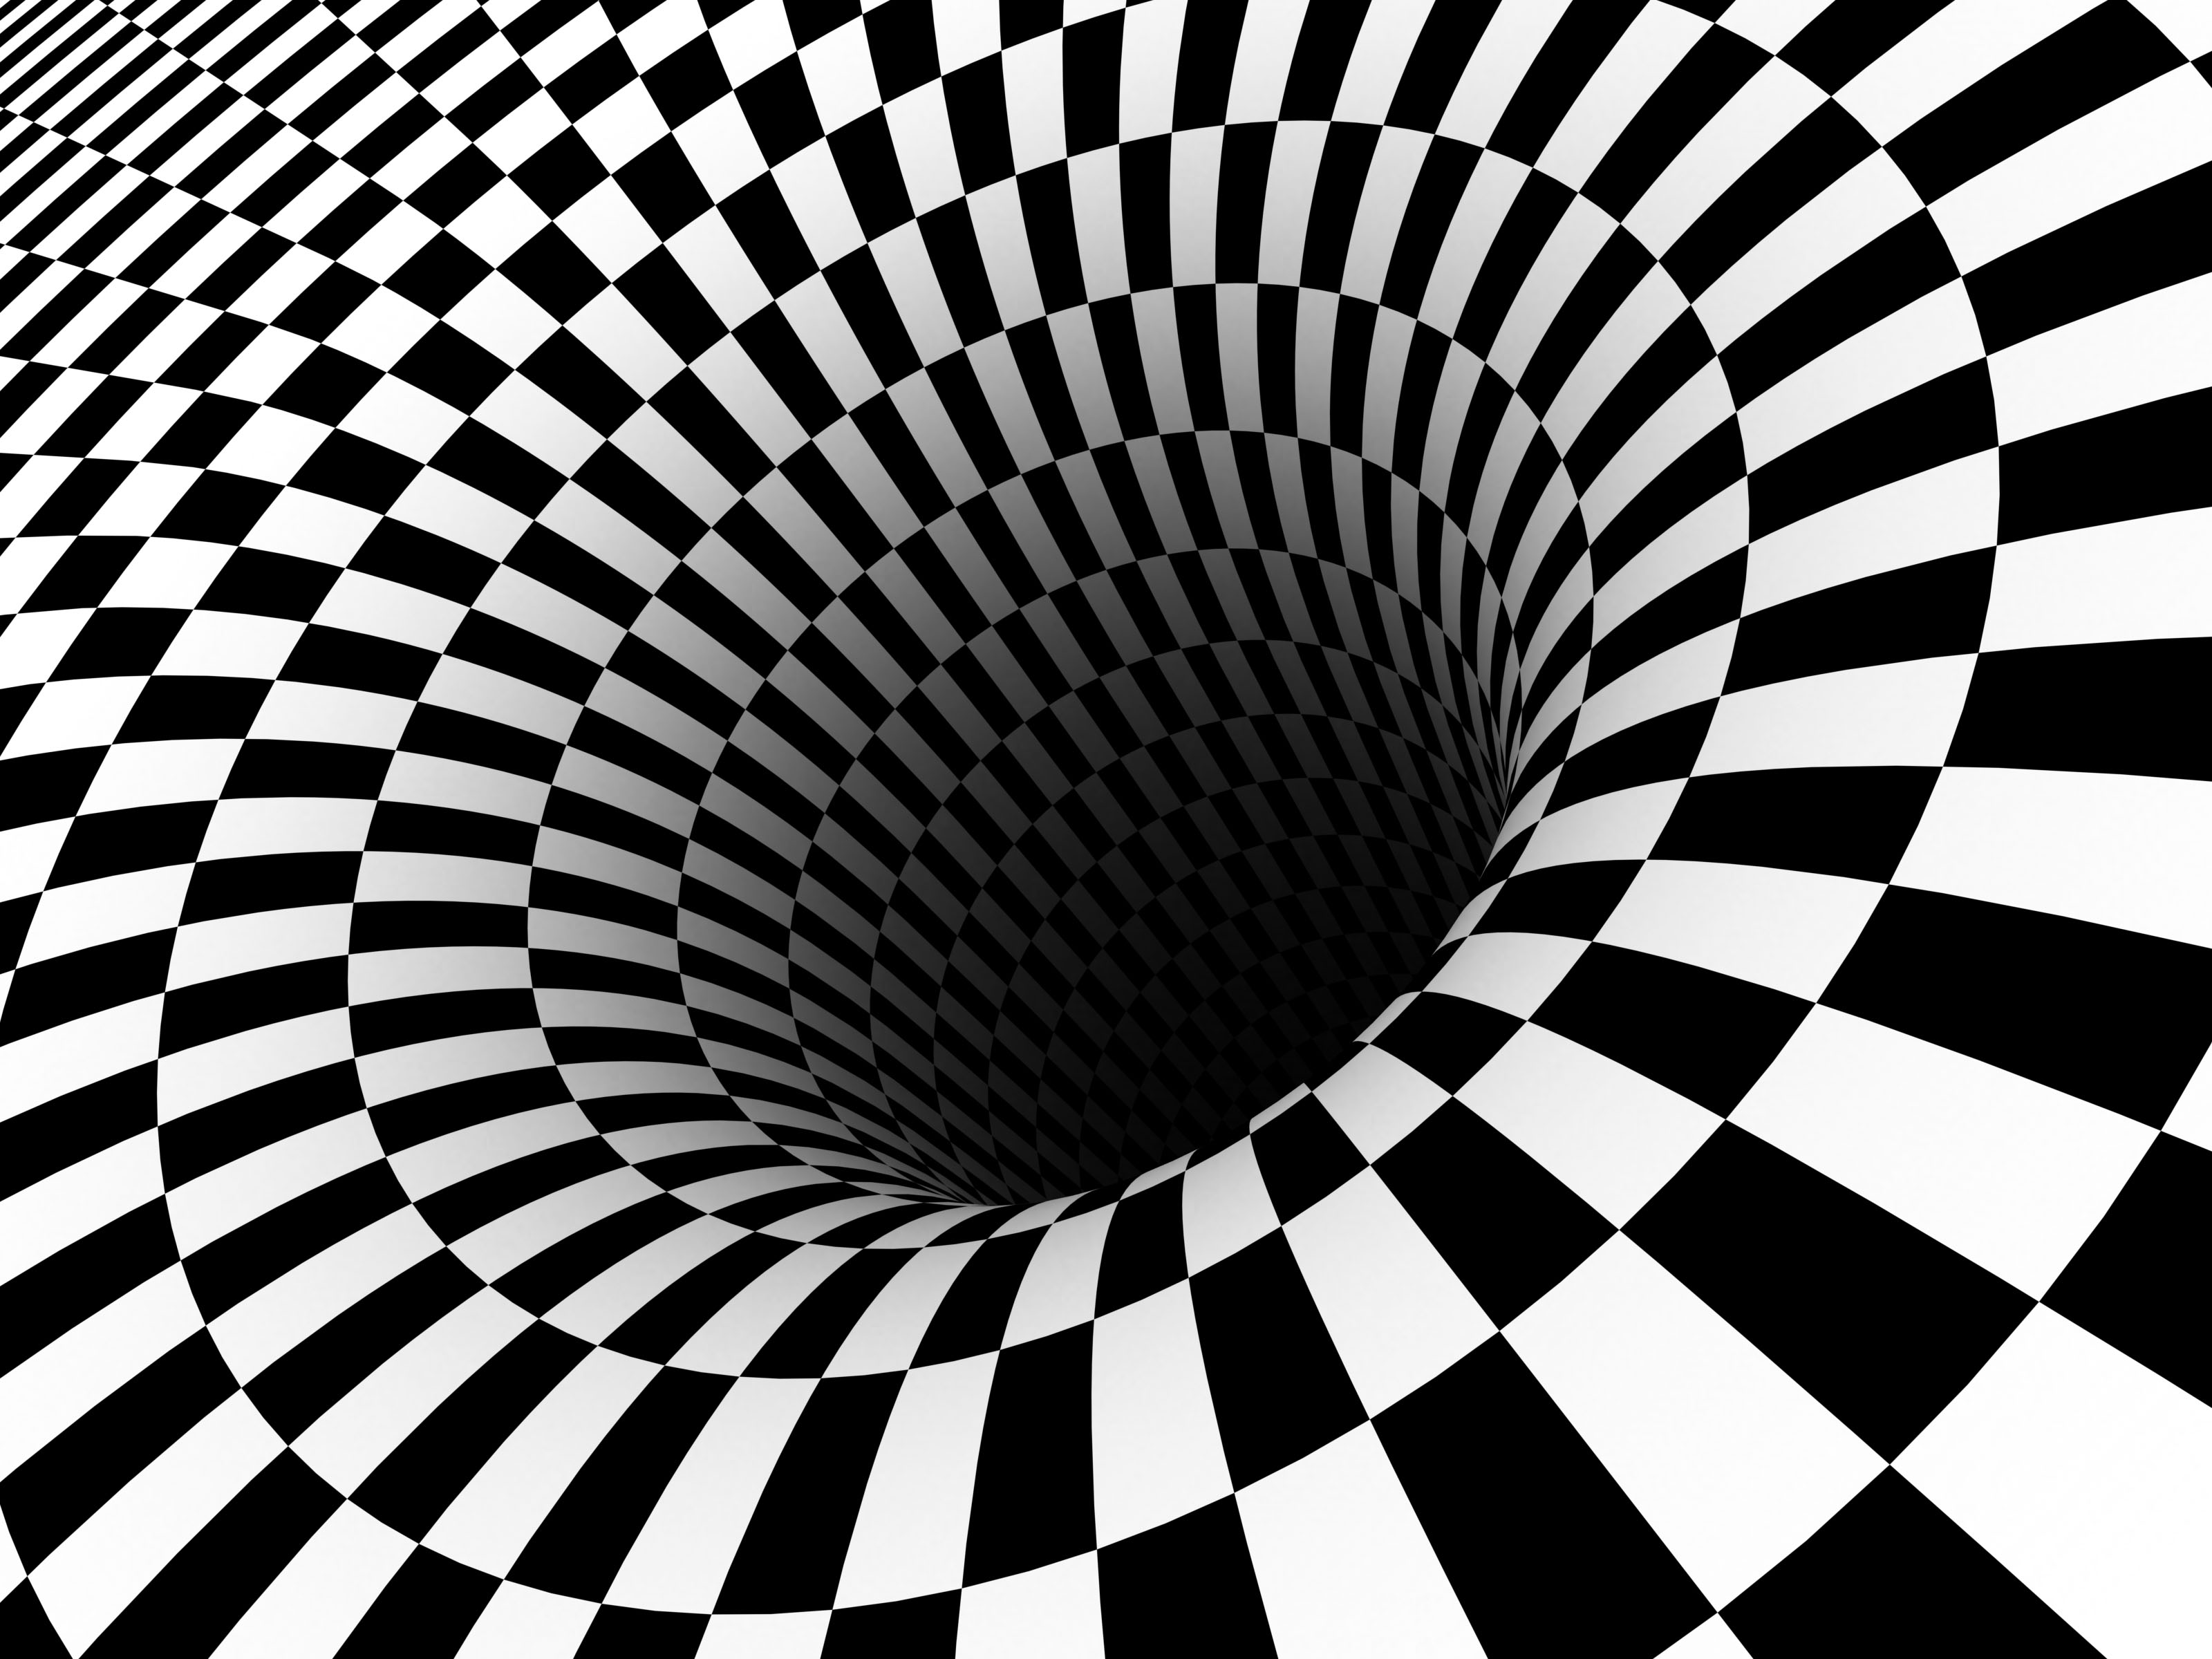 illusion hd wallpapers-#22